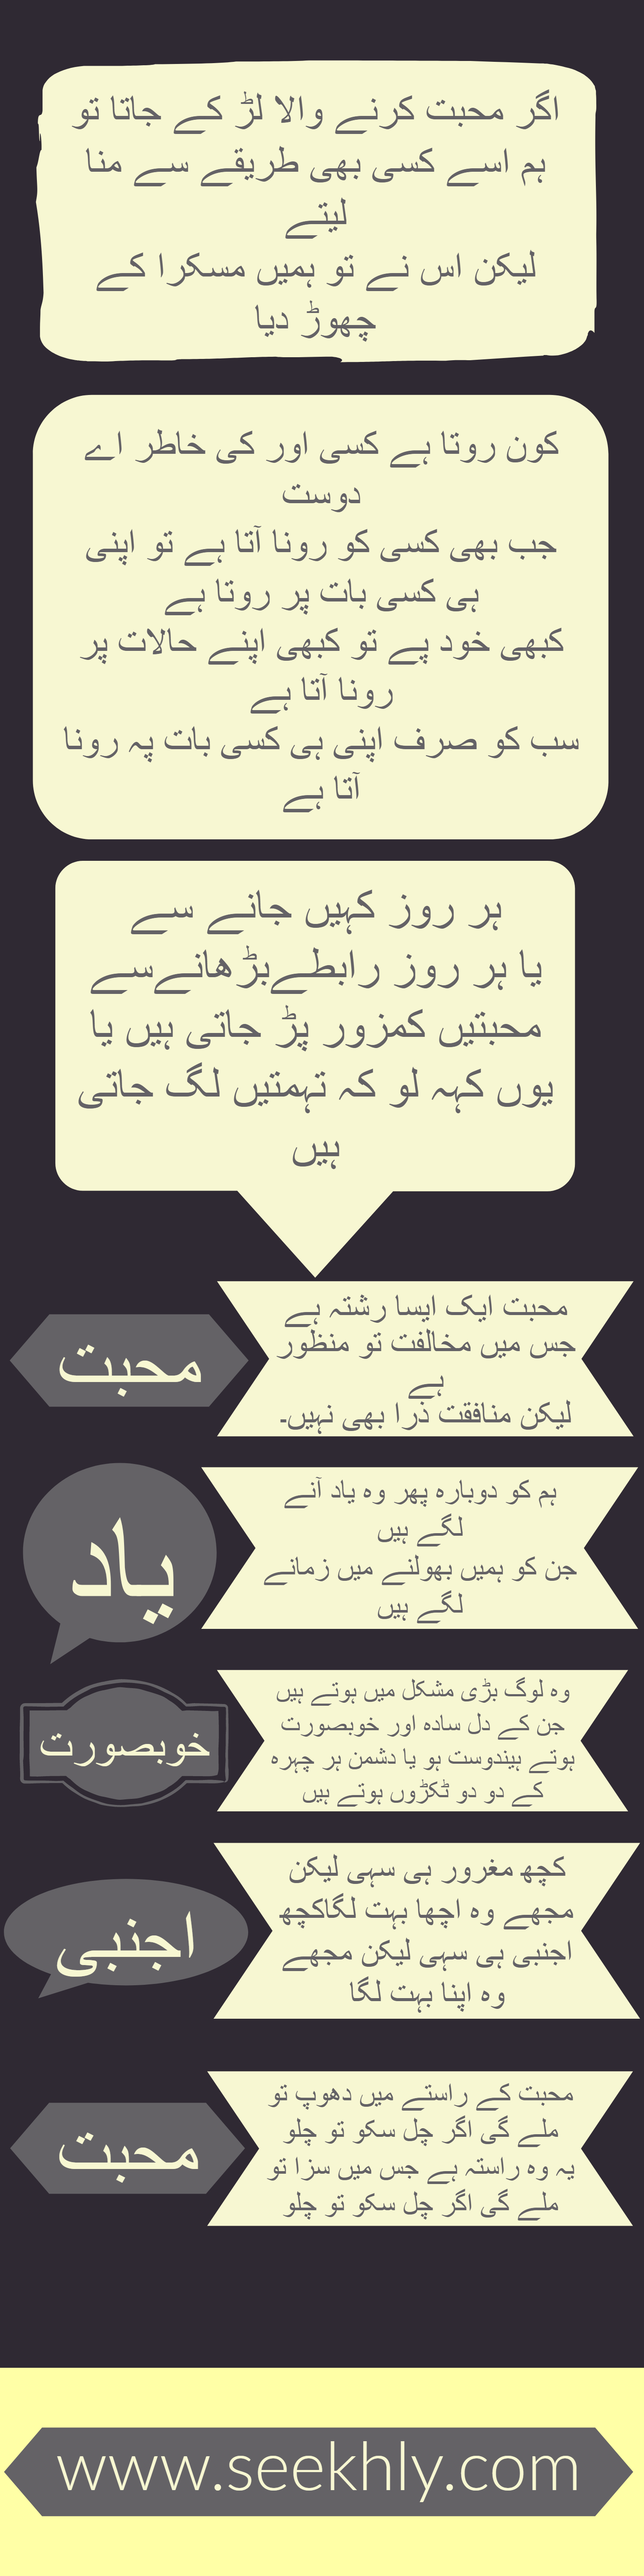 infographic, best urdu poetry, infographic, love poetry in urdu, urdu shayari. urdu quotes, urdu poetry,